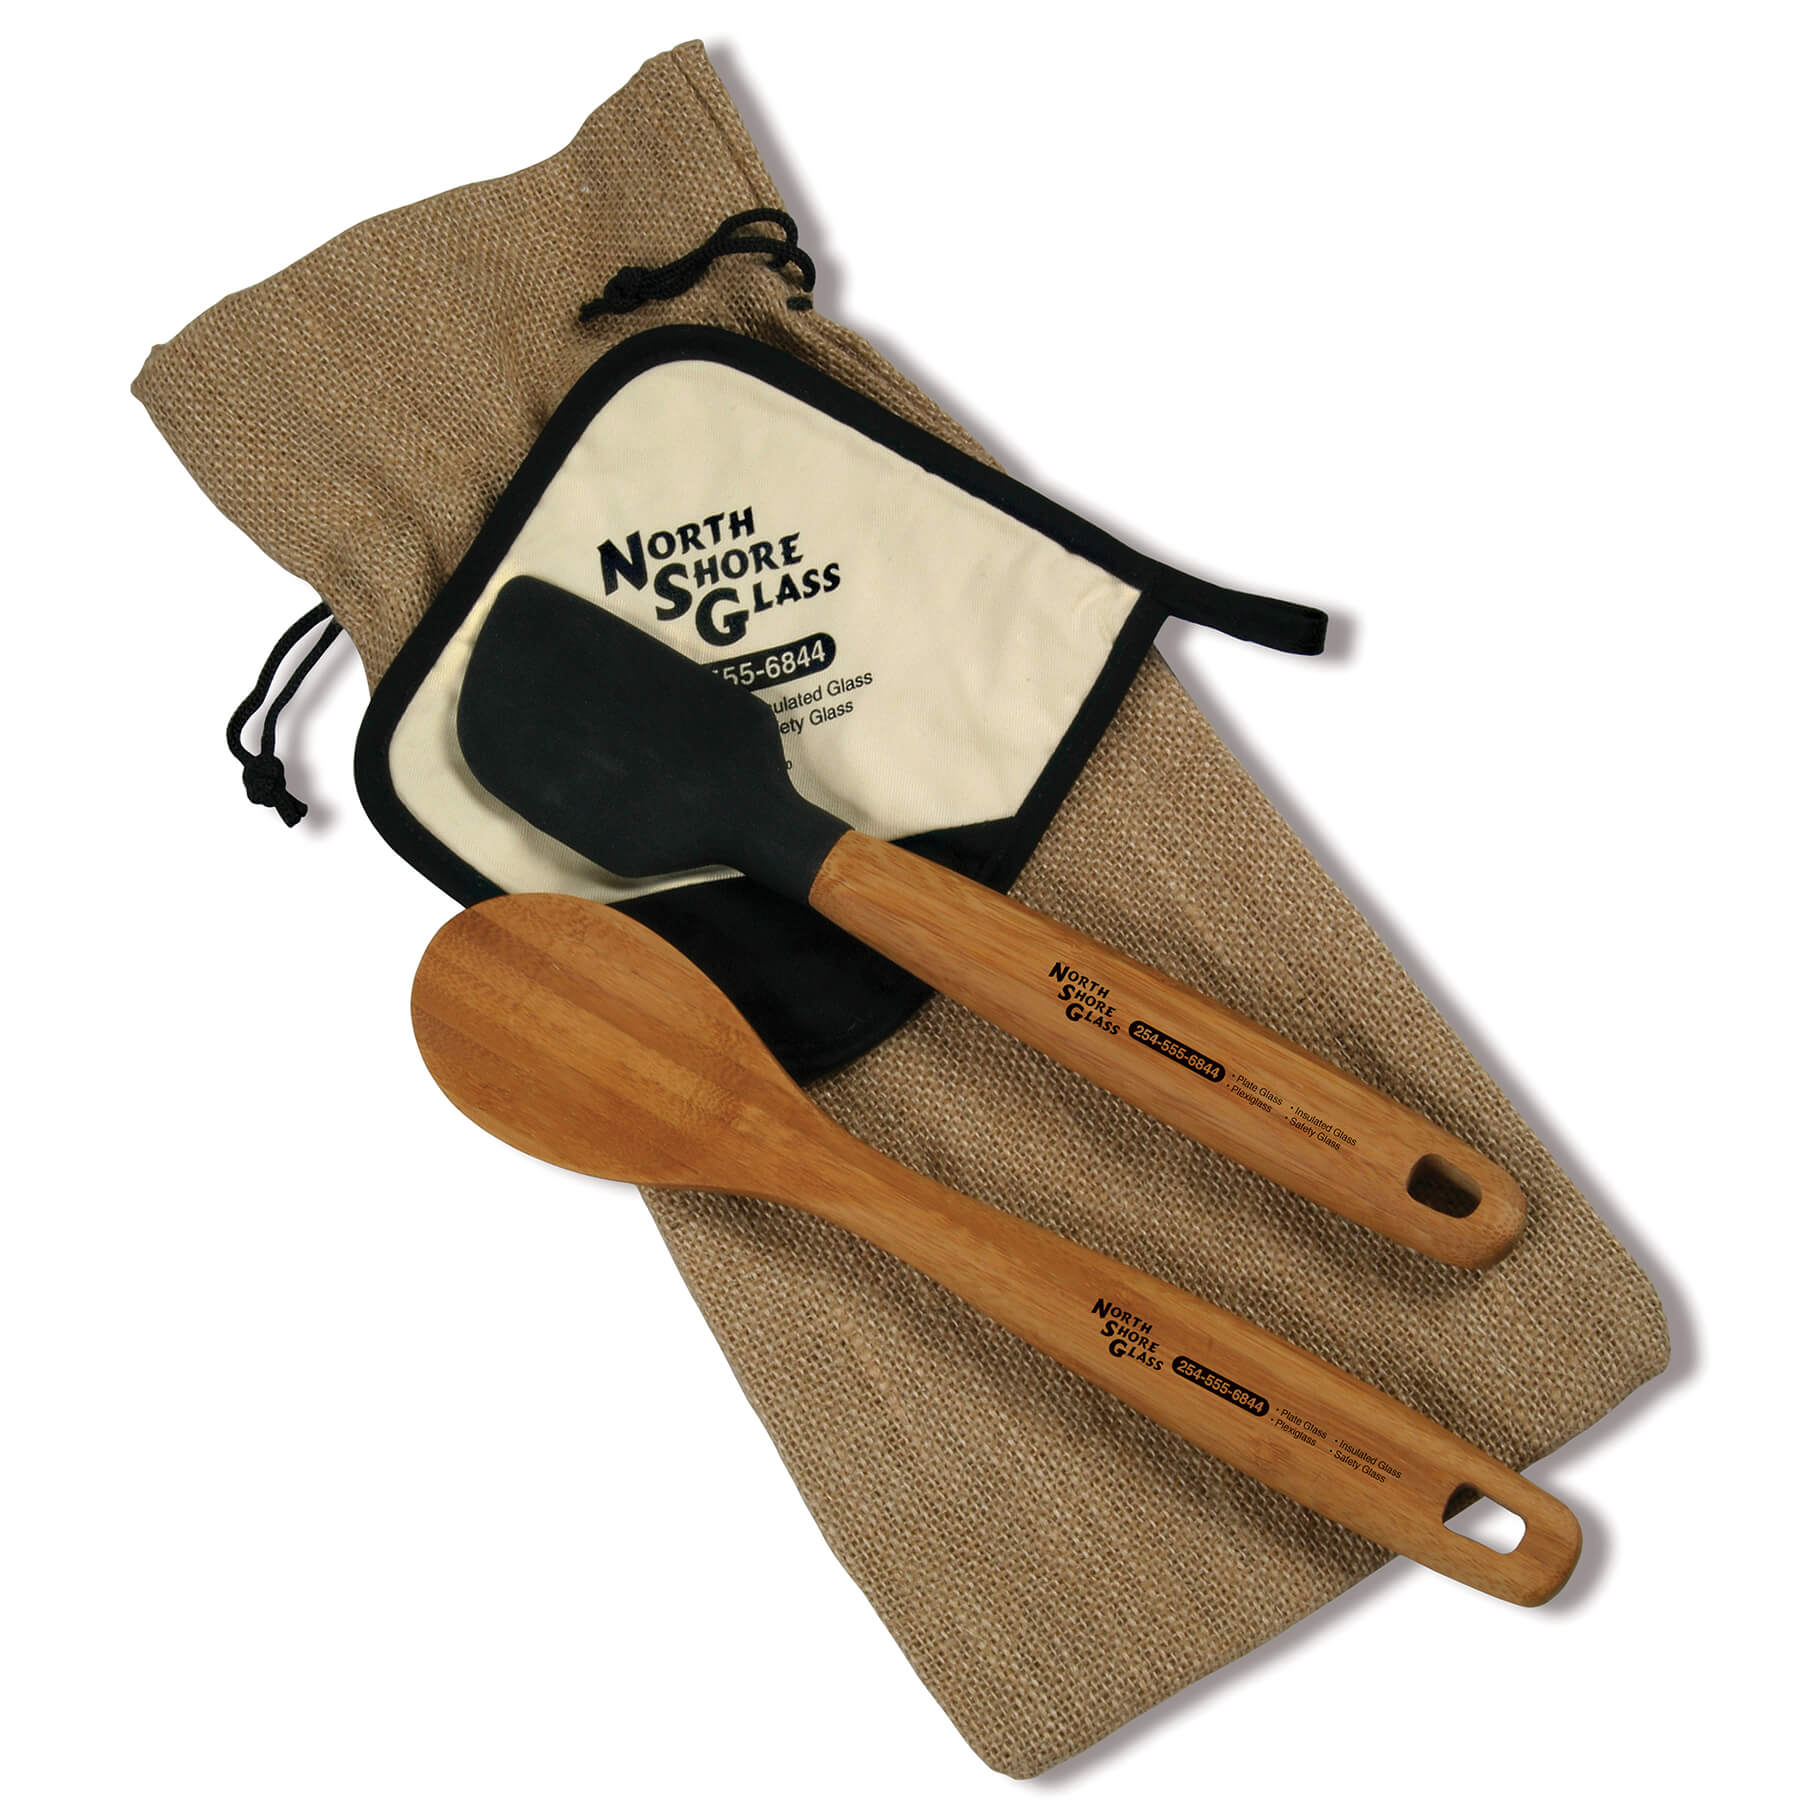 Item: BSS-2 Bamboo Gift Set